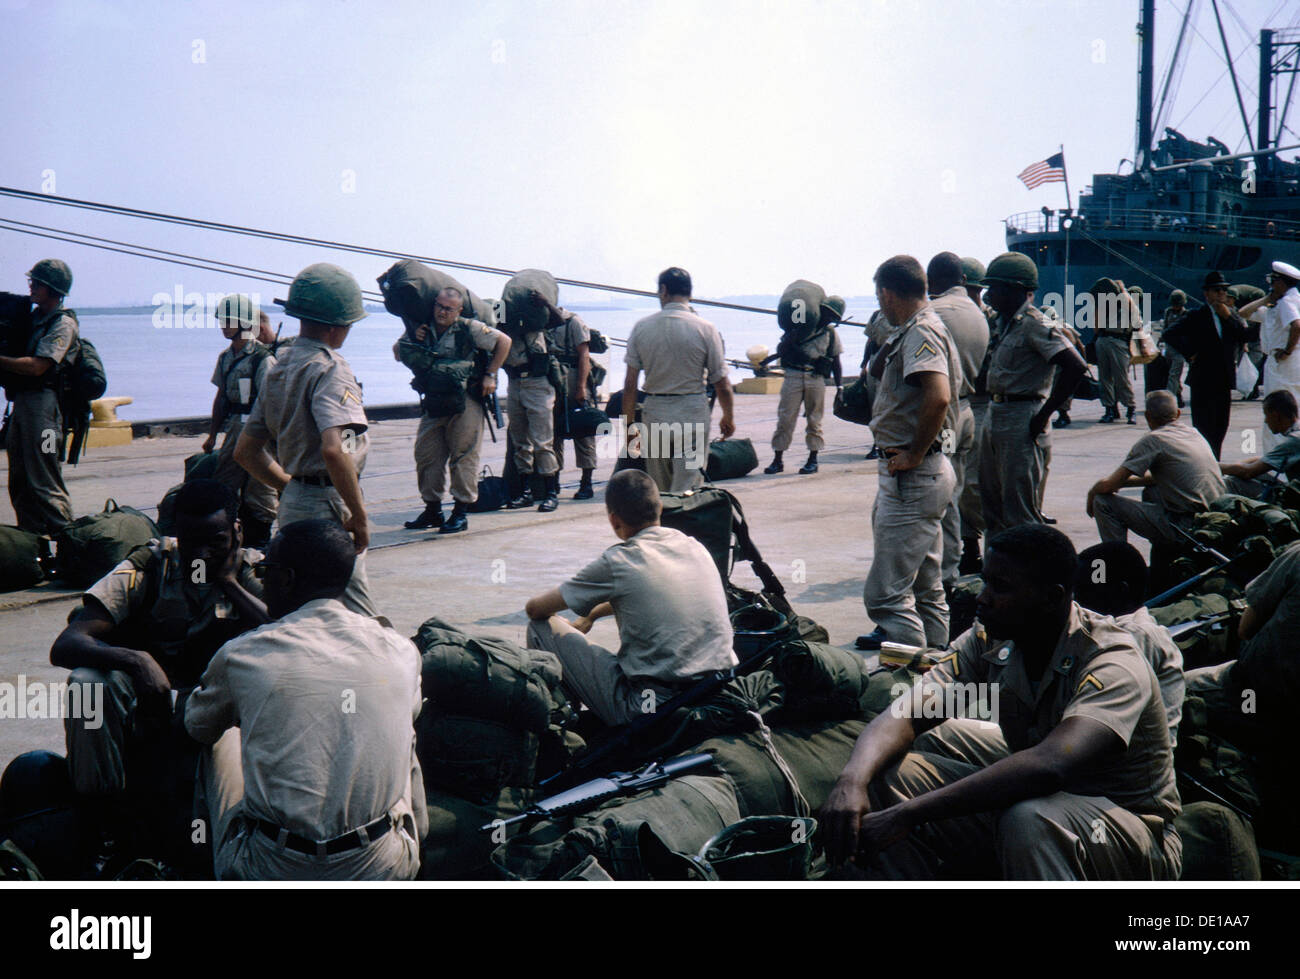 Vietnam War 1957 - 1975 arrival of American troops South Vietnam 1965 harbour harbor harbours harbors port ports baggage - Stock Image